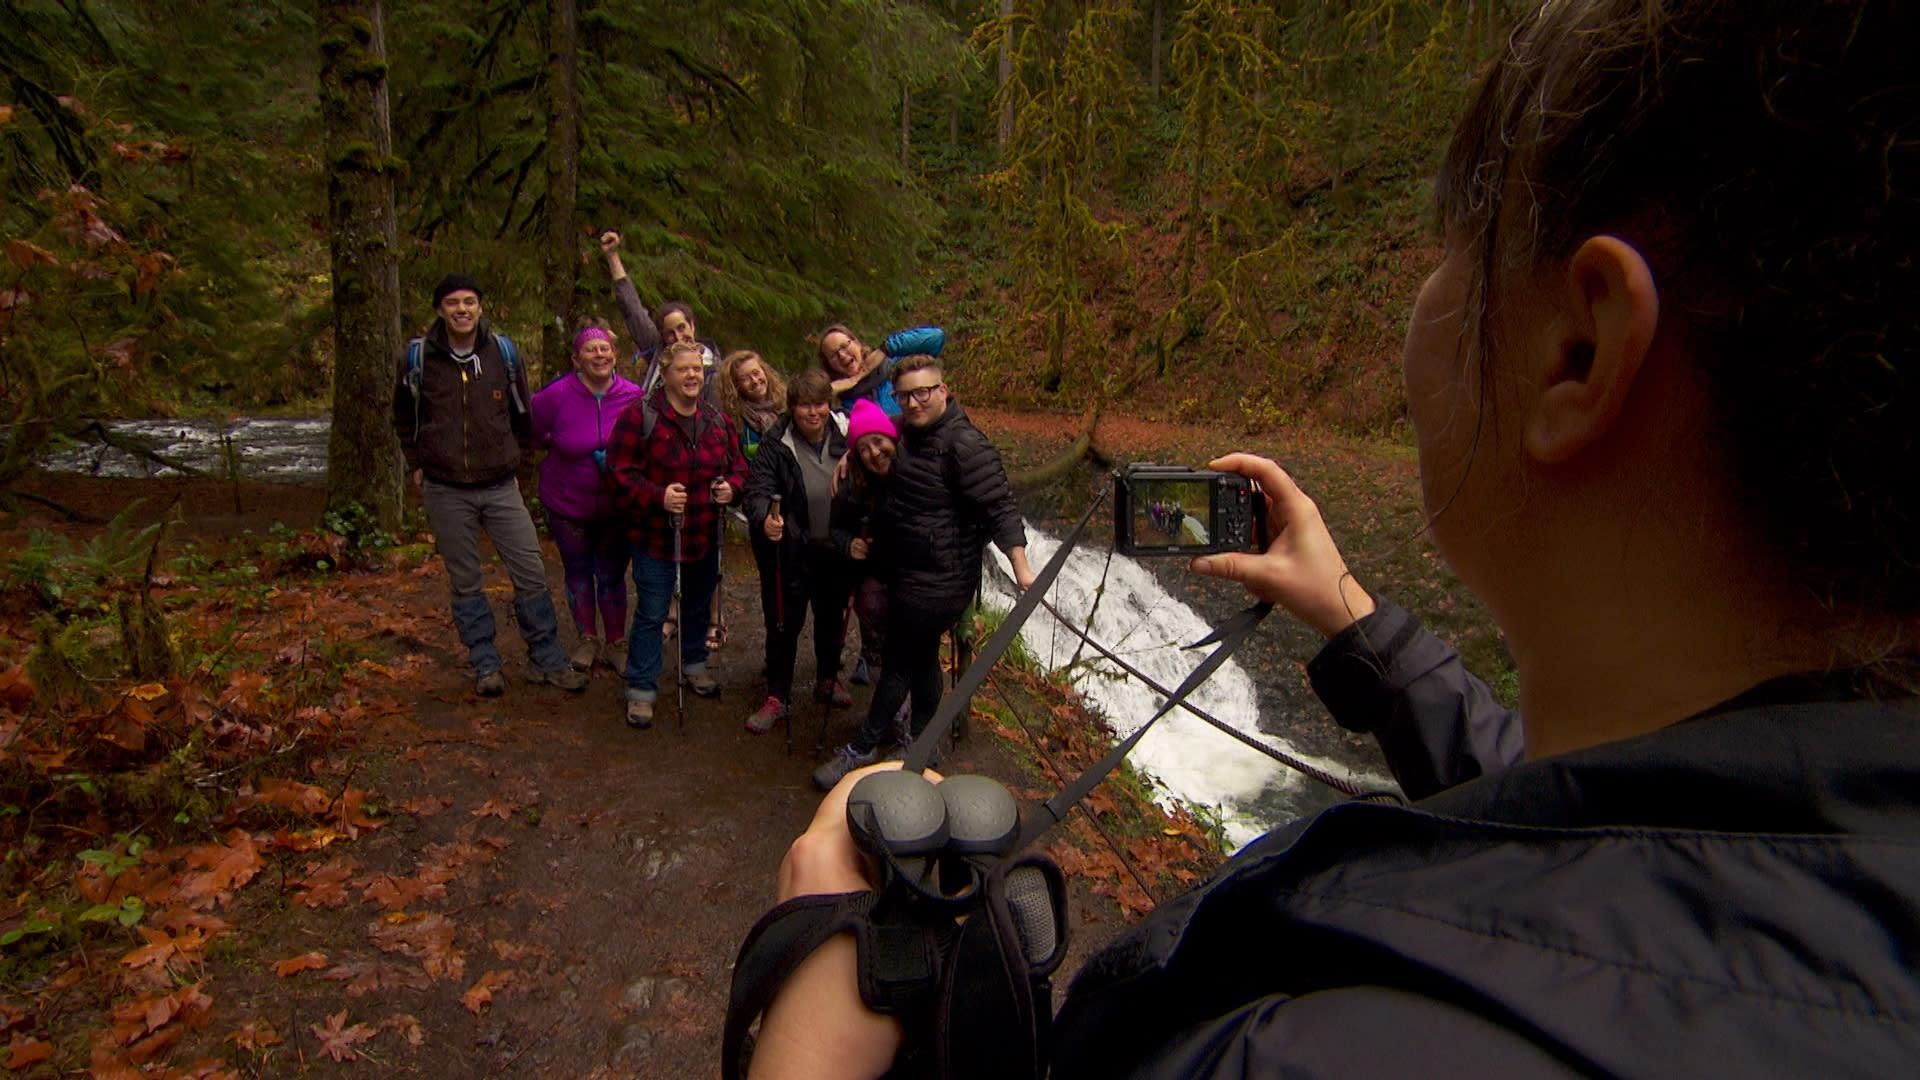 Jenny Bruso snaps a photo during an Unlikely Hikers group hike at Silver Falls State Park.